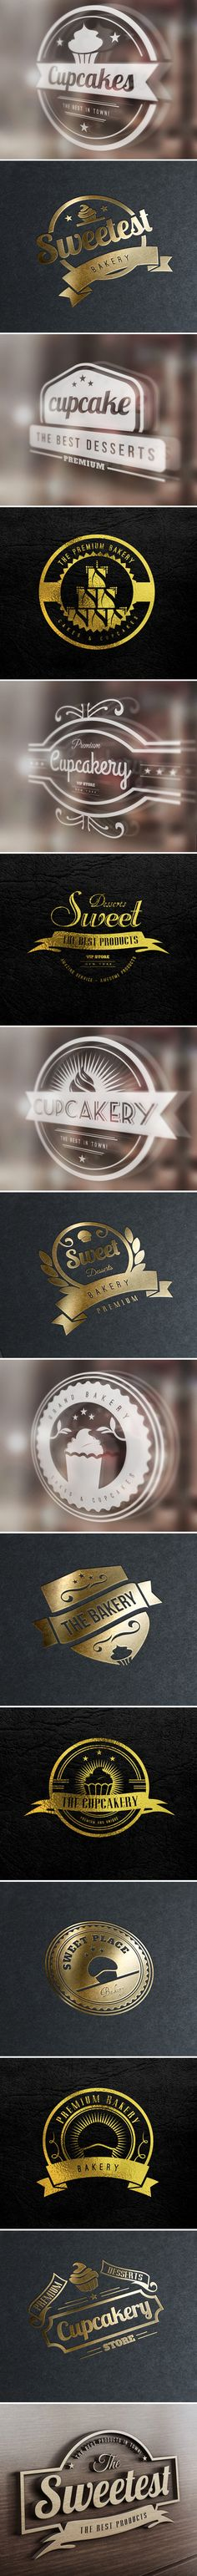 15 Bakery Cupcakes and Cakes Labels & Badges Logos is a set of premium labels and badges combined with vintage and modern style that you can use on Logos with emblem style, on bakery labels, restaurants, coffee and cupcake shops, bar and other places. Als…